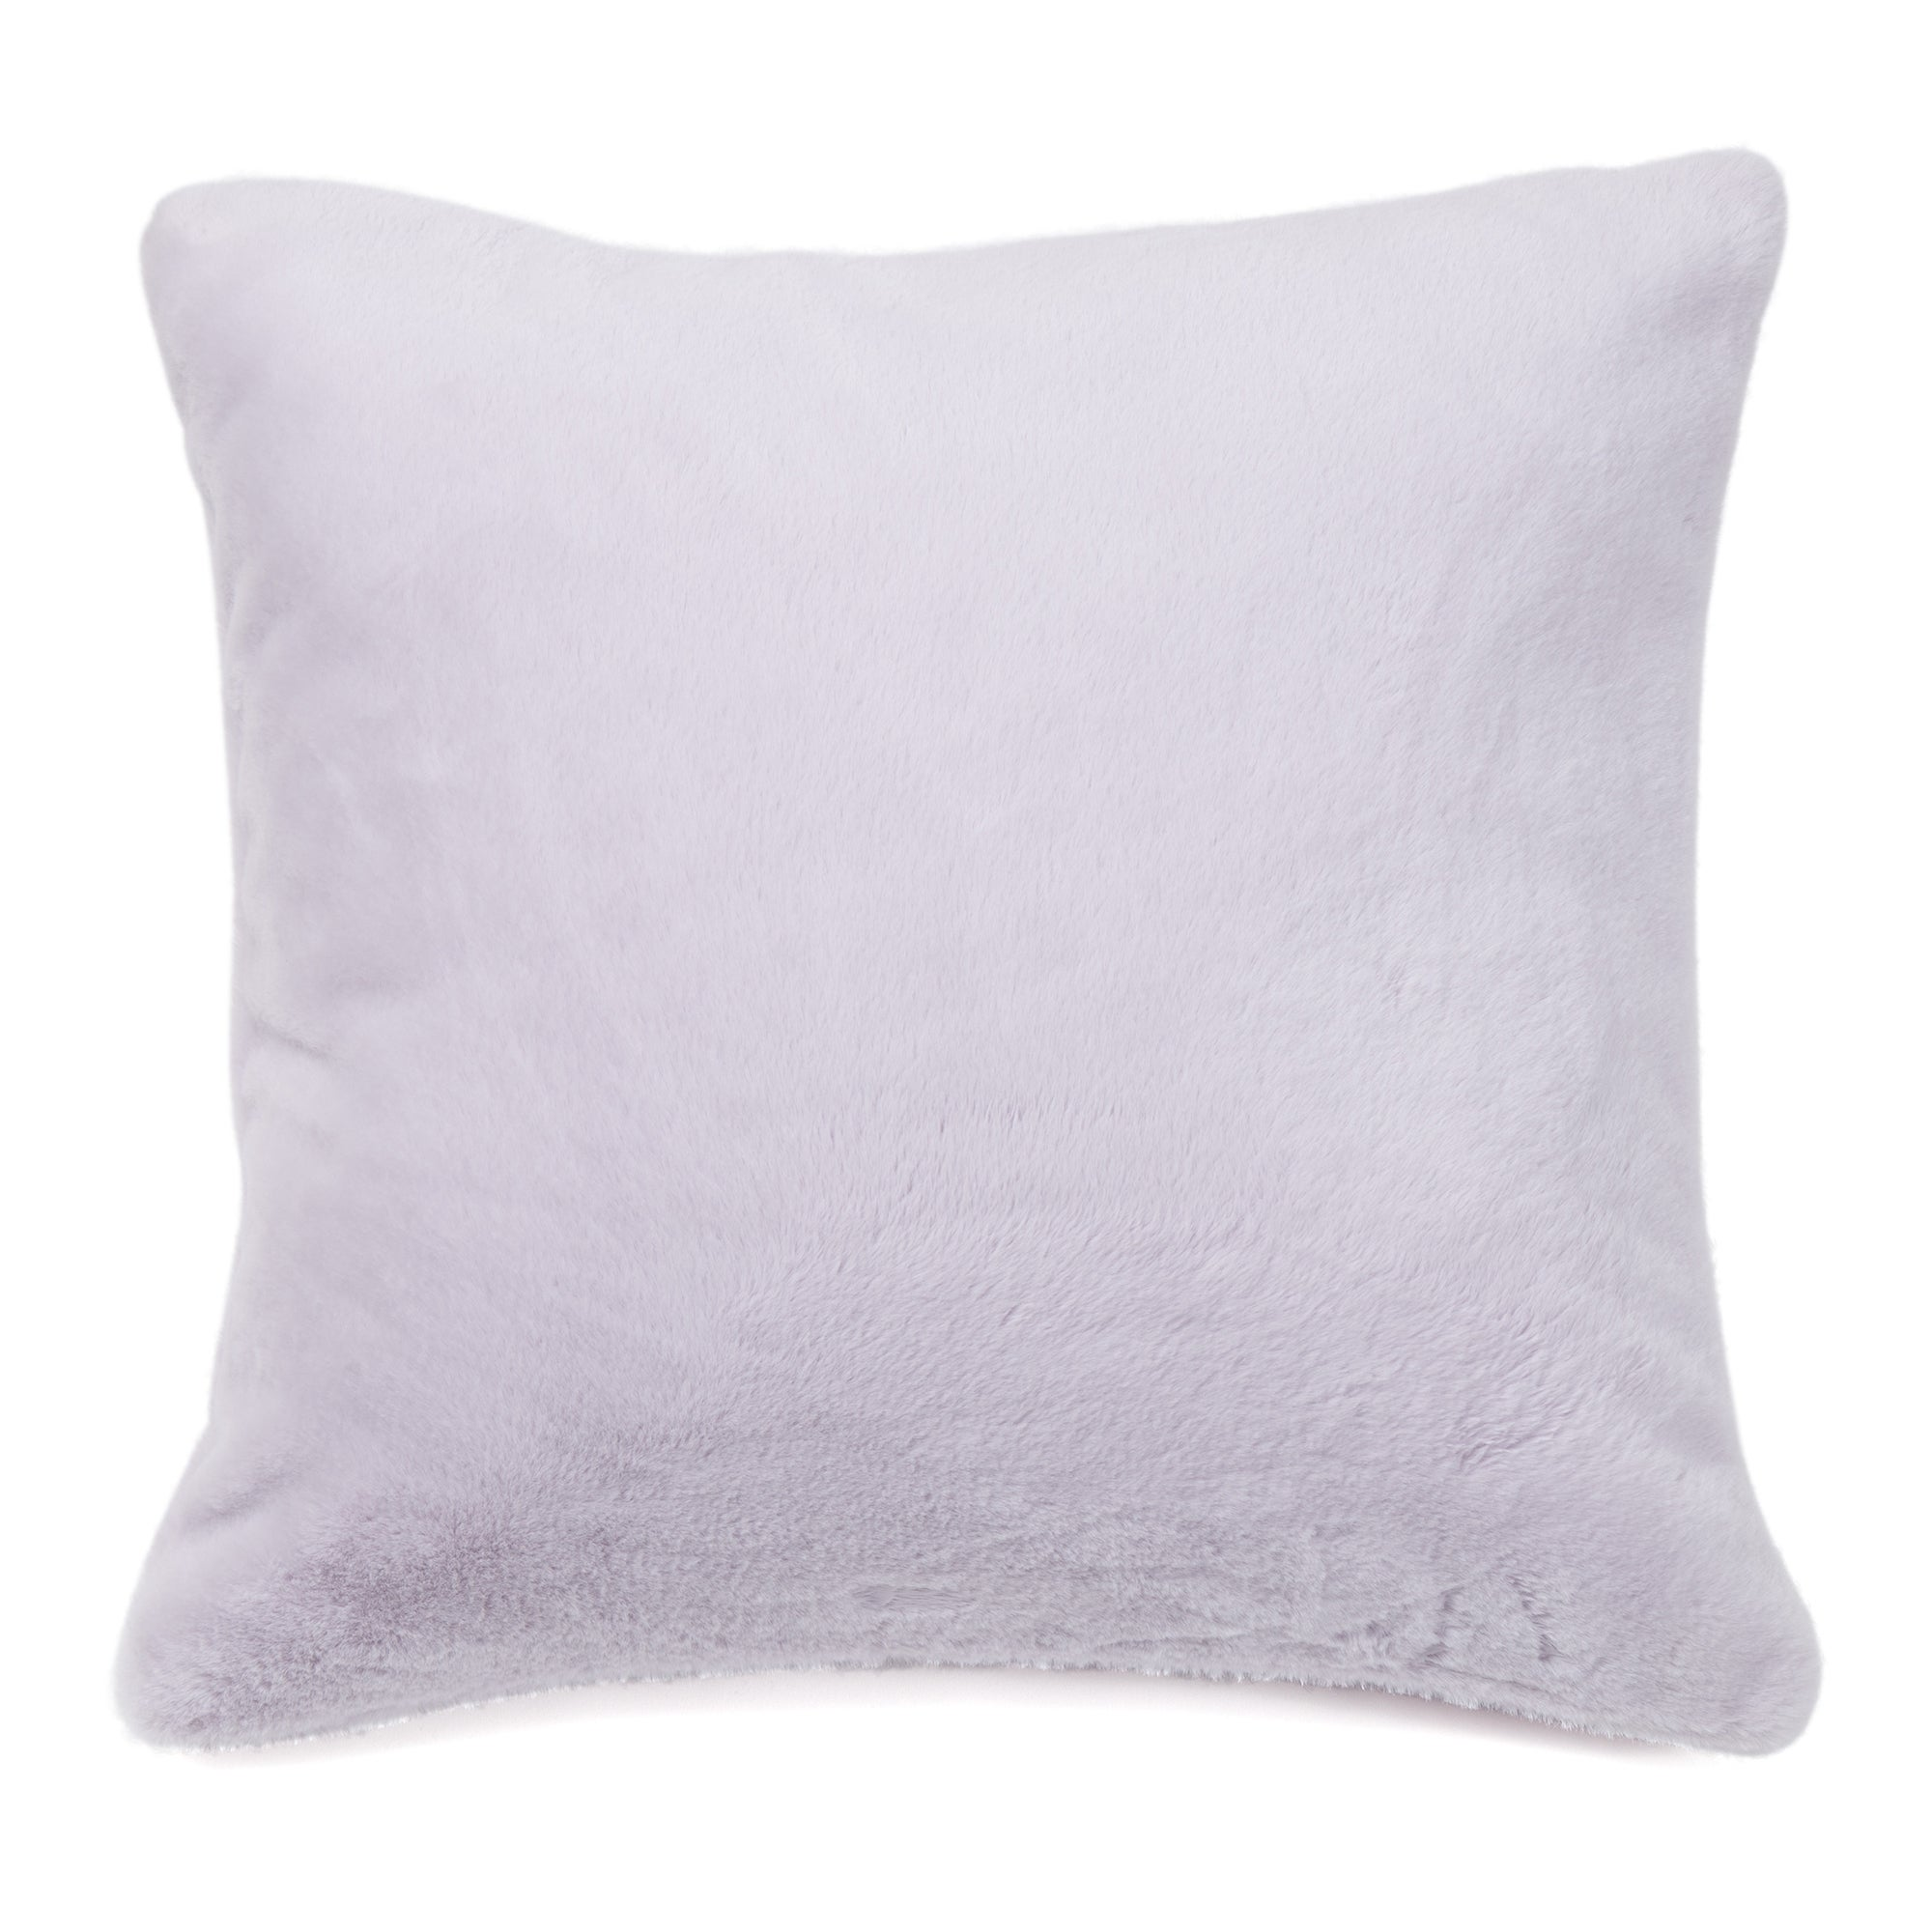 dennis qvc the for fur of bedding basso pillows x decorative home pillow faux set c com n